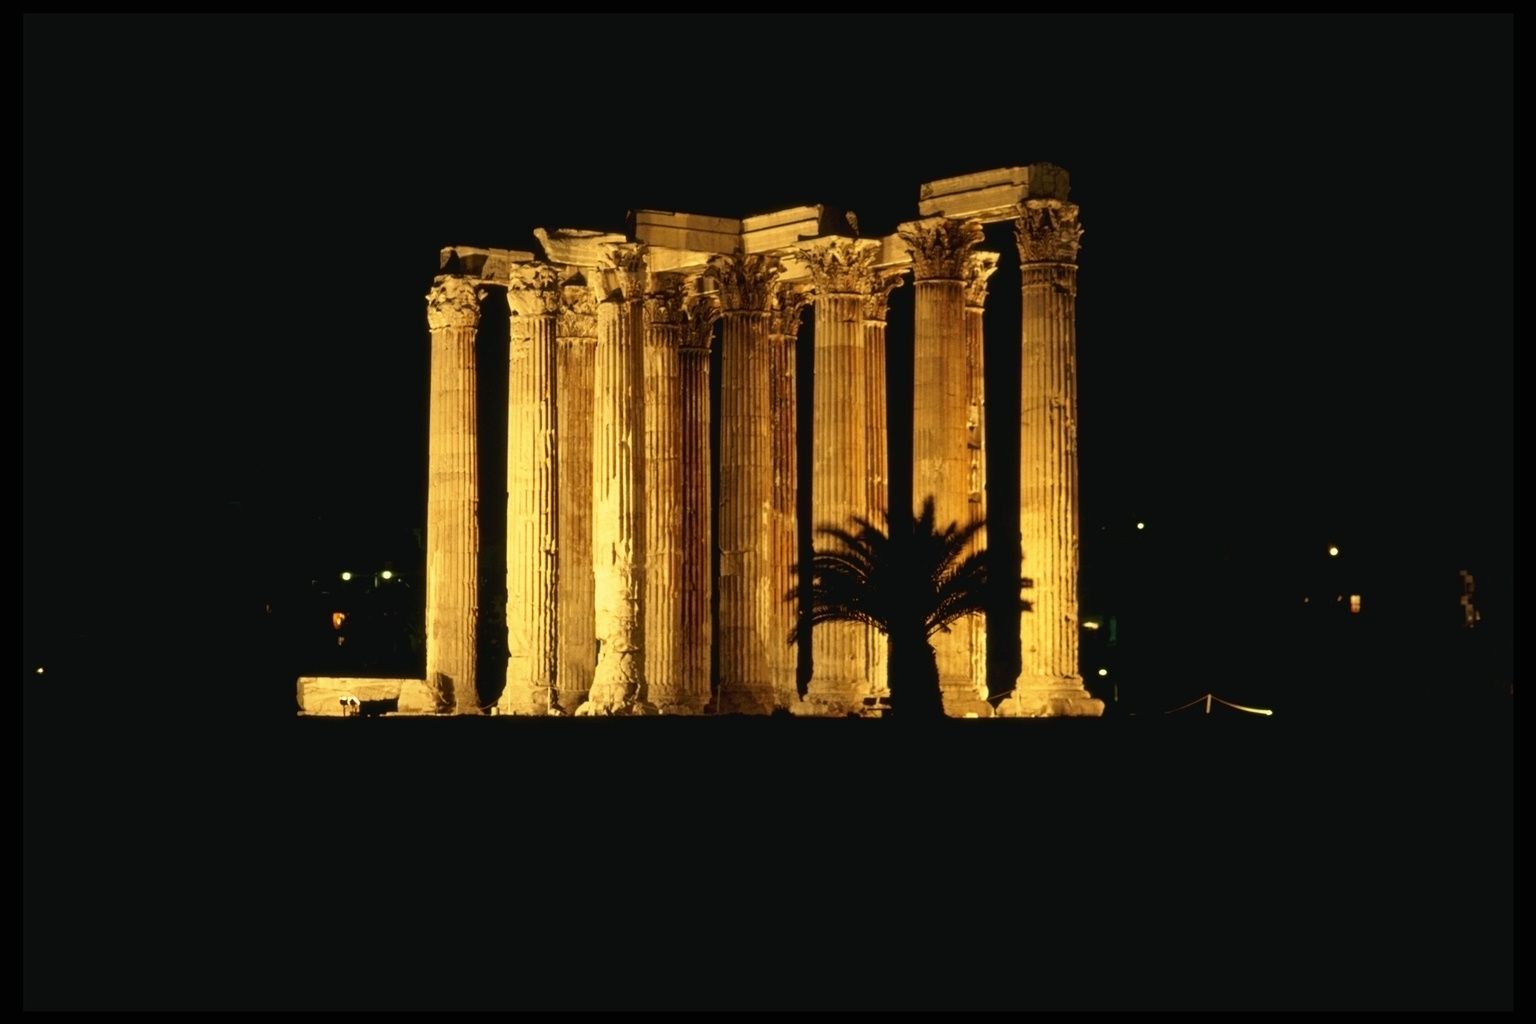 Historic Ruins night 1536 x 1024